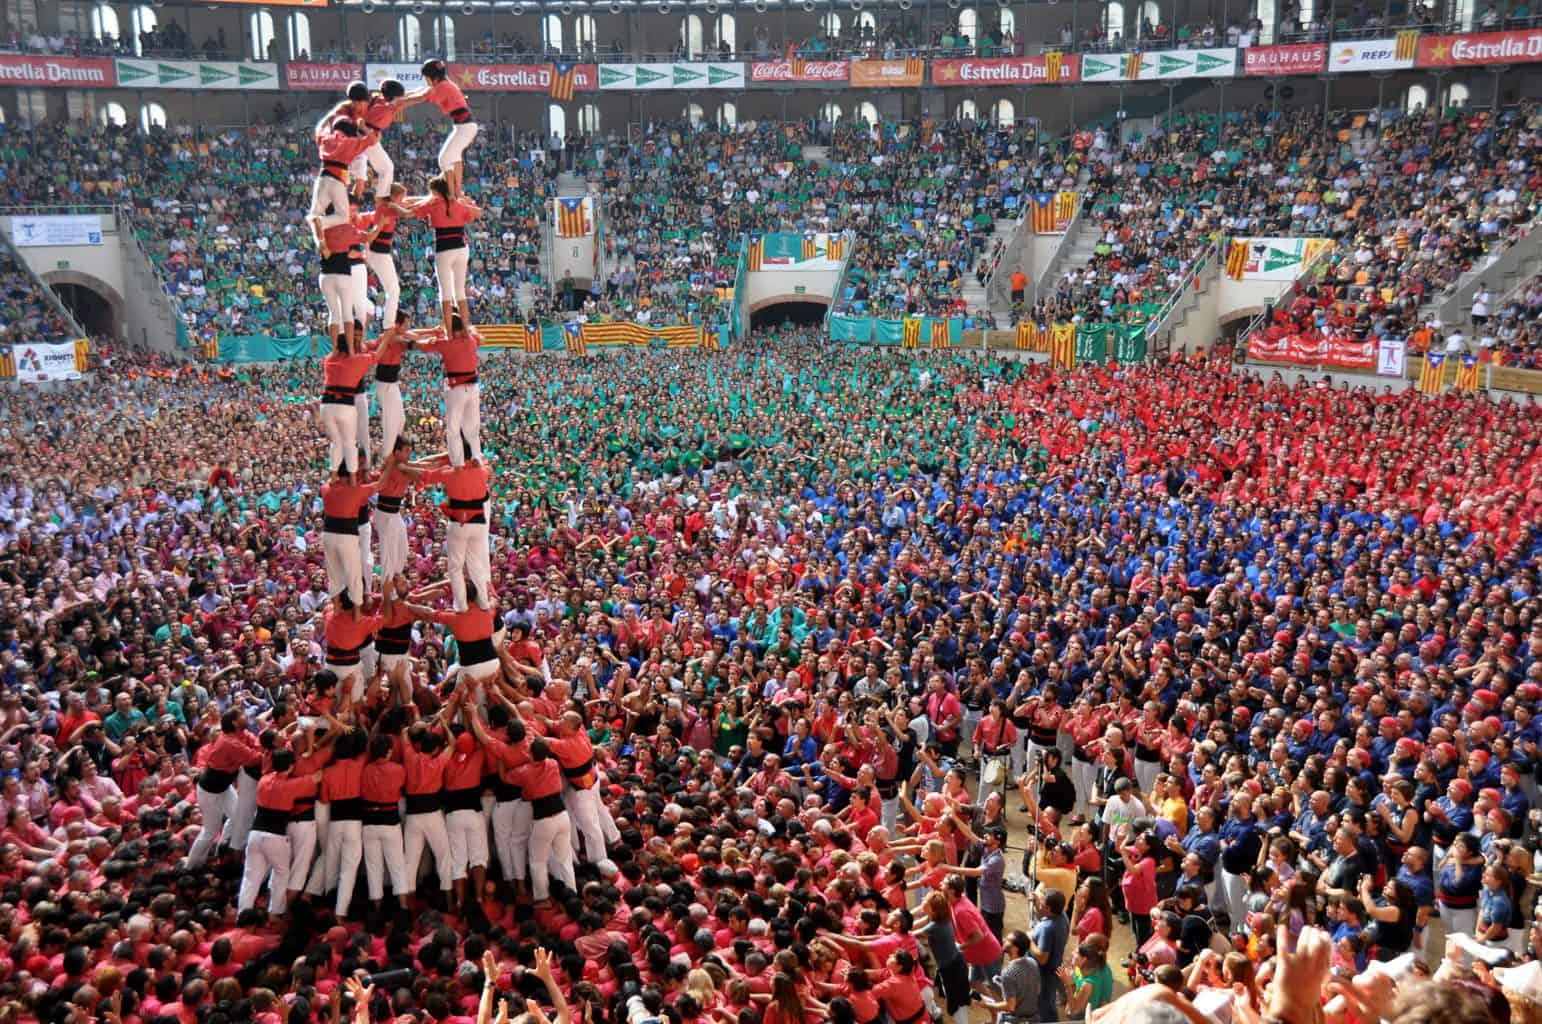 If you're in Barcelona over the summer, you'll see these Castellers, or human towers, pop on during the weekends.